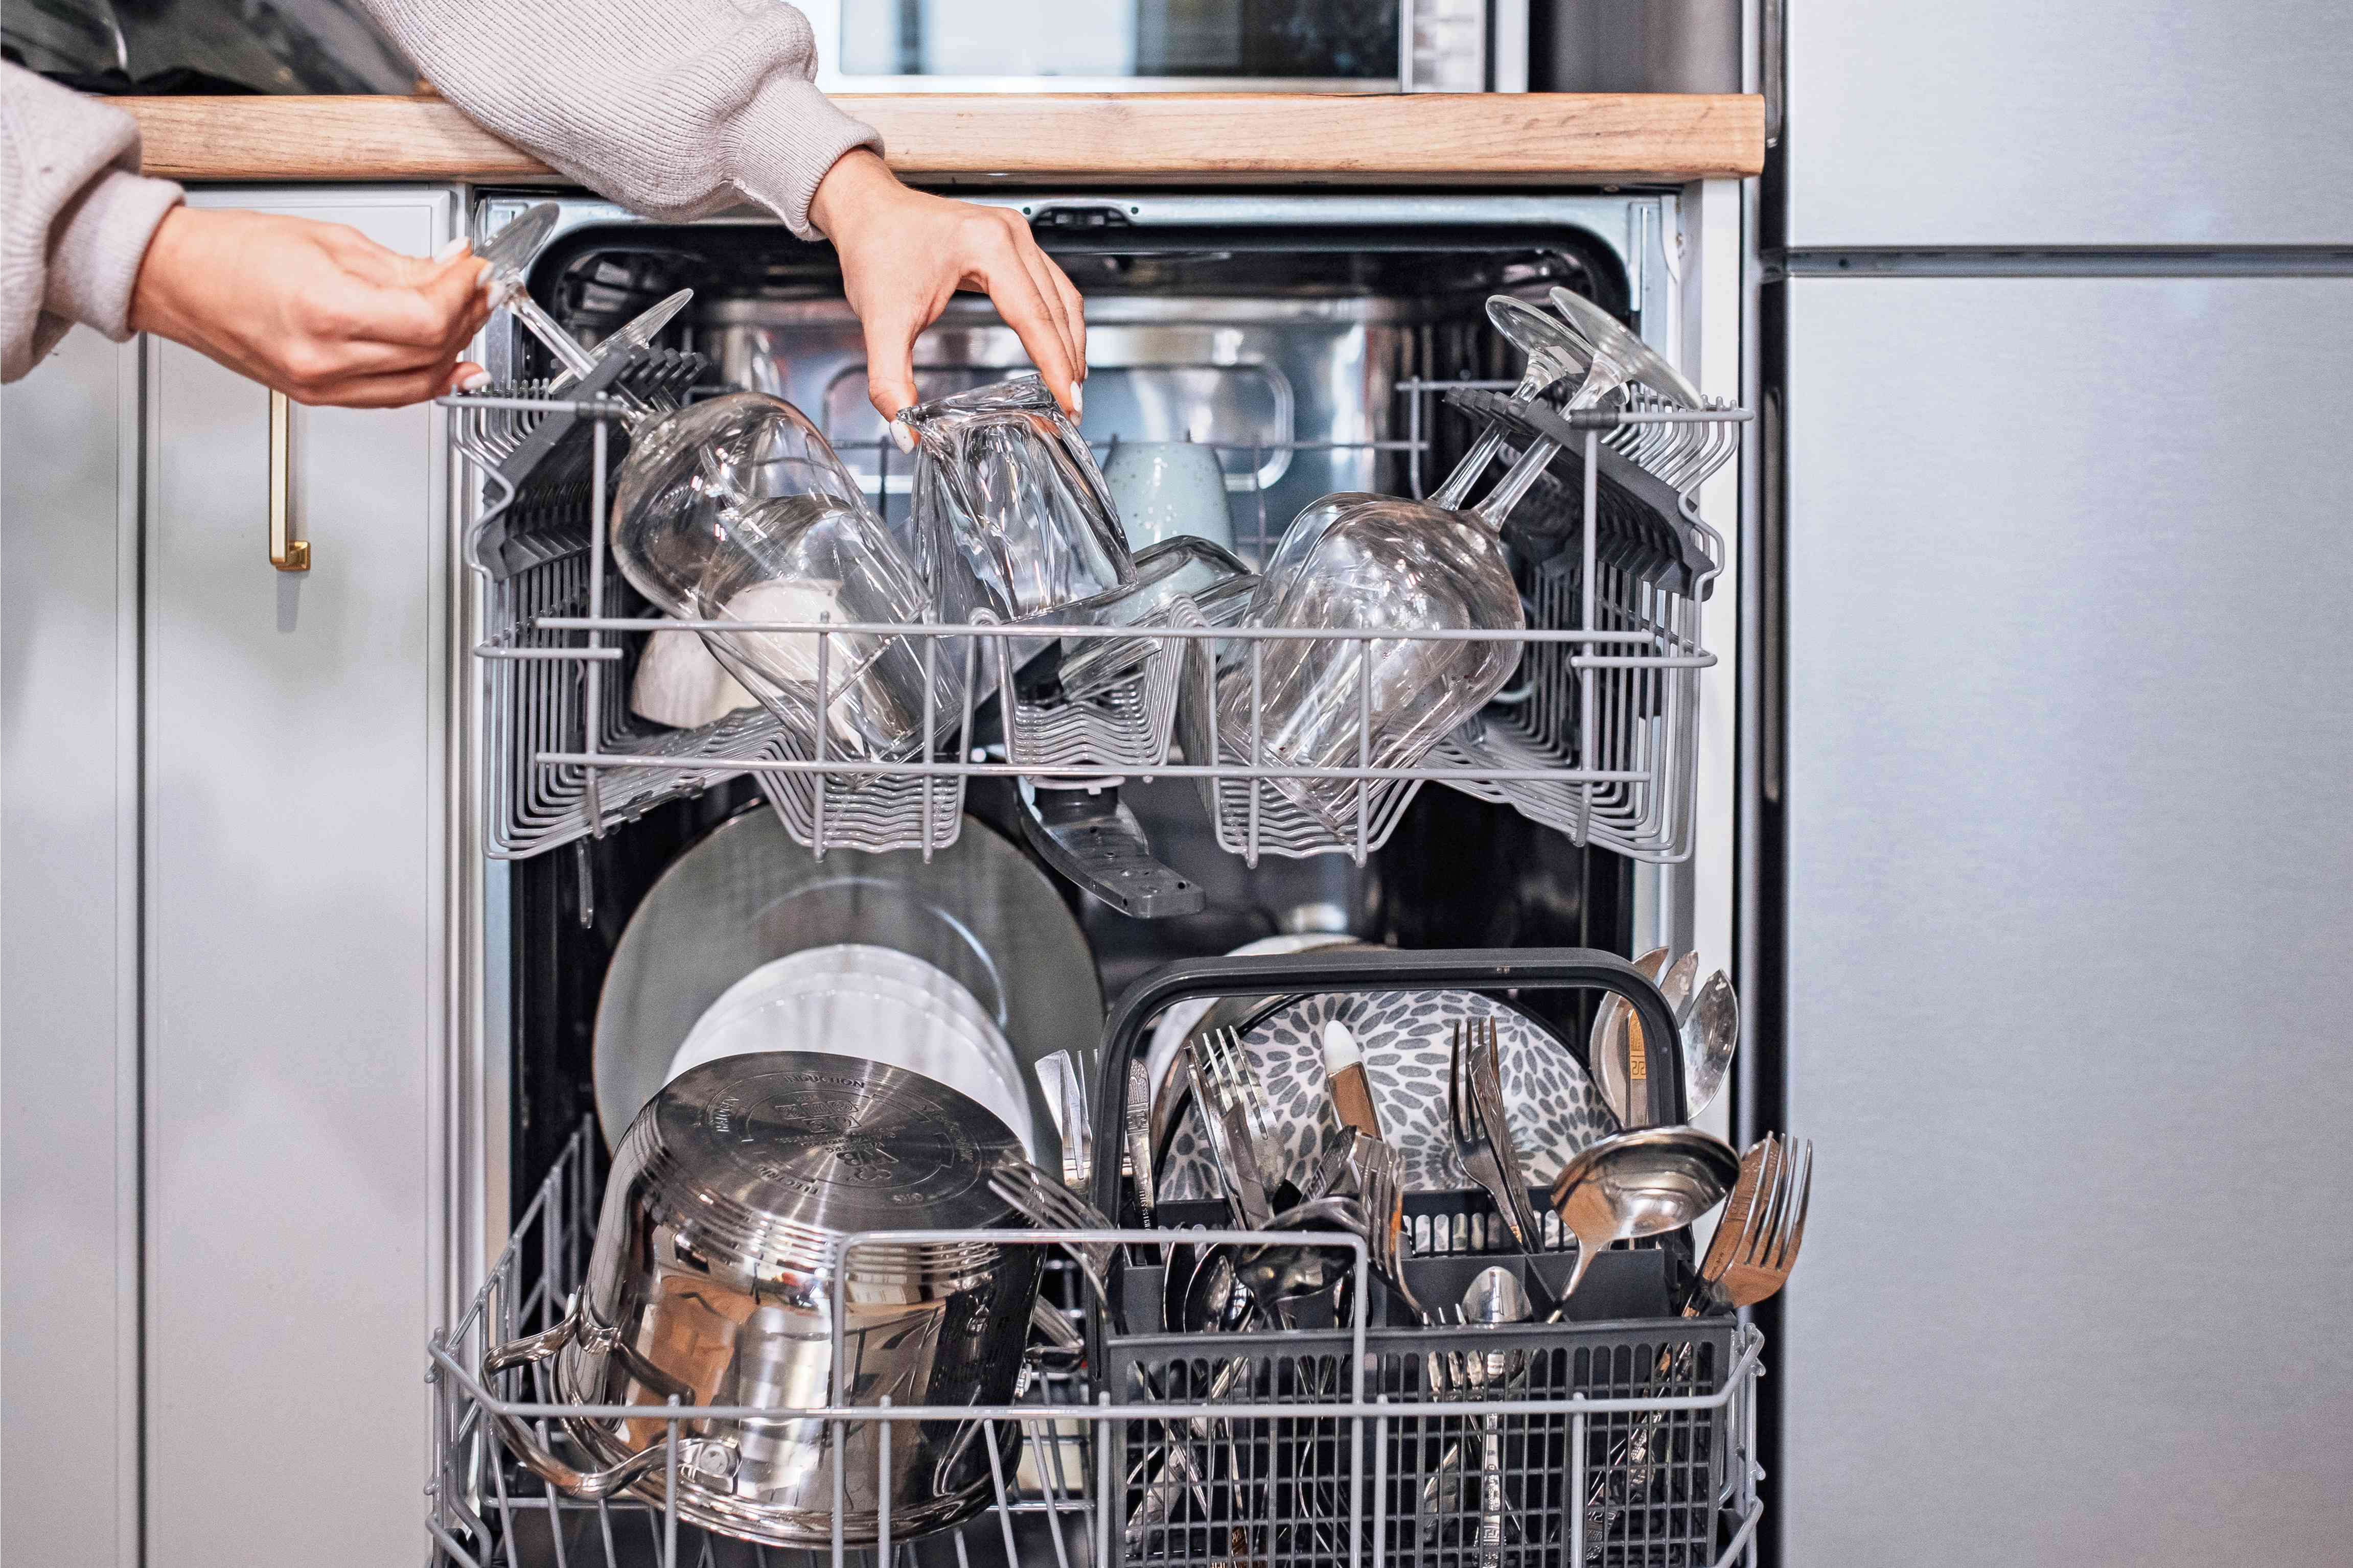 deciding which rack to load dishes on